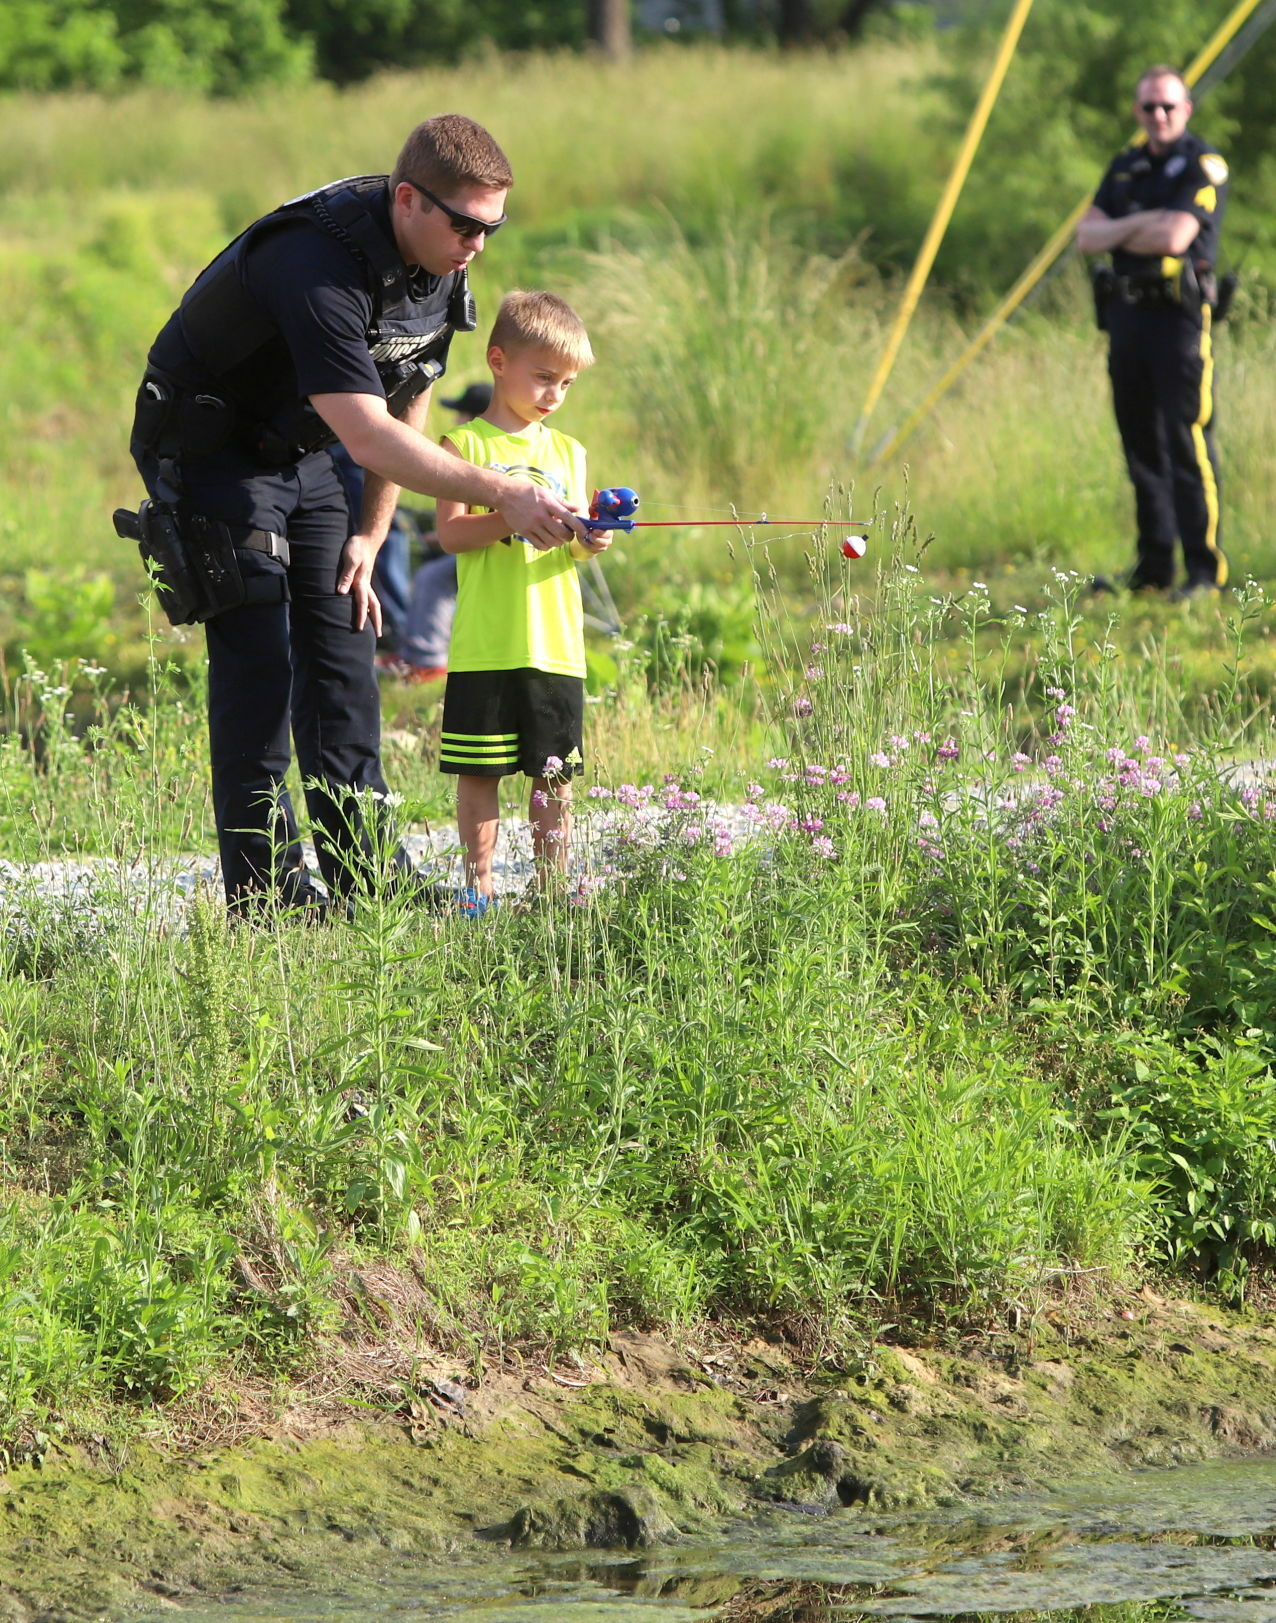 Fishing with First Responders